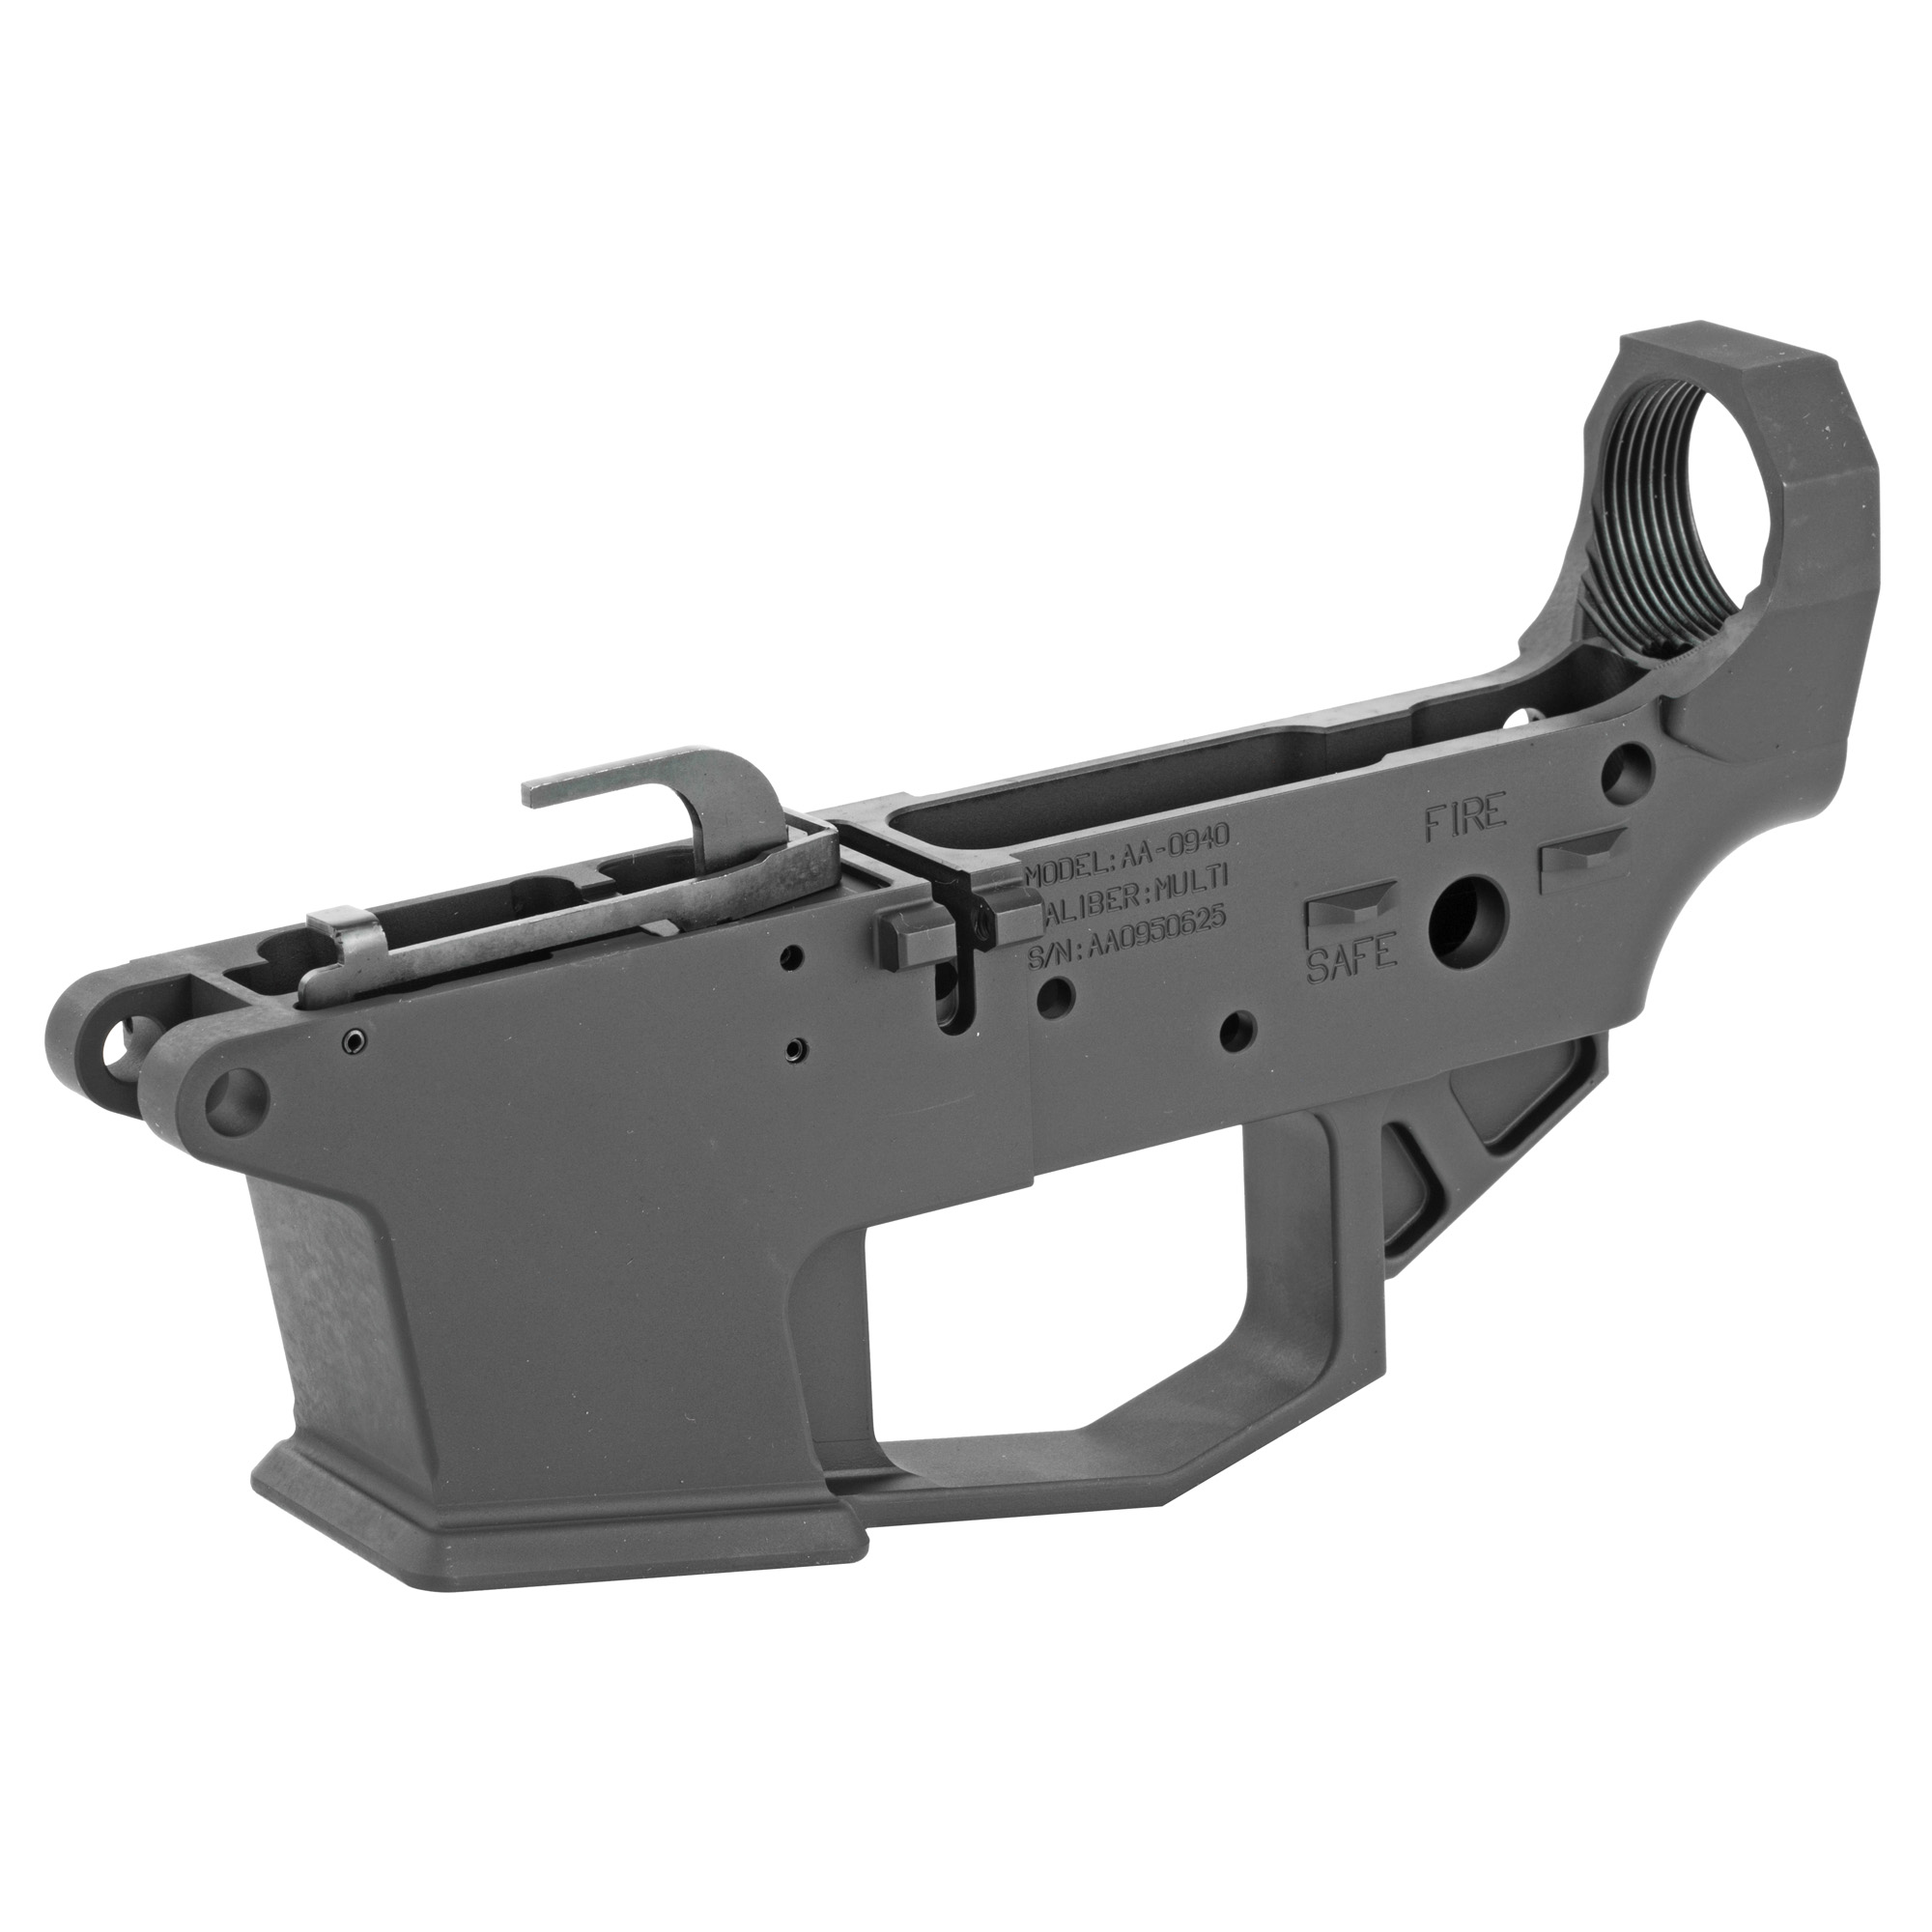 """The Angstadt Arms 0940 lower receiver set is the foundation of a quality pistol caliber AR-15. Machined from a solid block of 7075-T6 billet aluminum"""" the 0940 lower receiver is compatible with 9mm"""" .40 S&W and 357 Sig GLOCK magazines. Featuring standard AR-15 controls and accepting most aftermarket Mil-Spec components"""" the 0940 is instantly familiar to anyone experienced with the AR-15/M4 platform. To aid in reloads"""" the receiver features a flared magazine well and last round bolt hold open design which locks the bolt open on an empty magazine. The lower receiver can be completed with standard mil-spec components."""